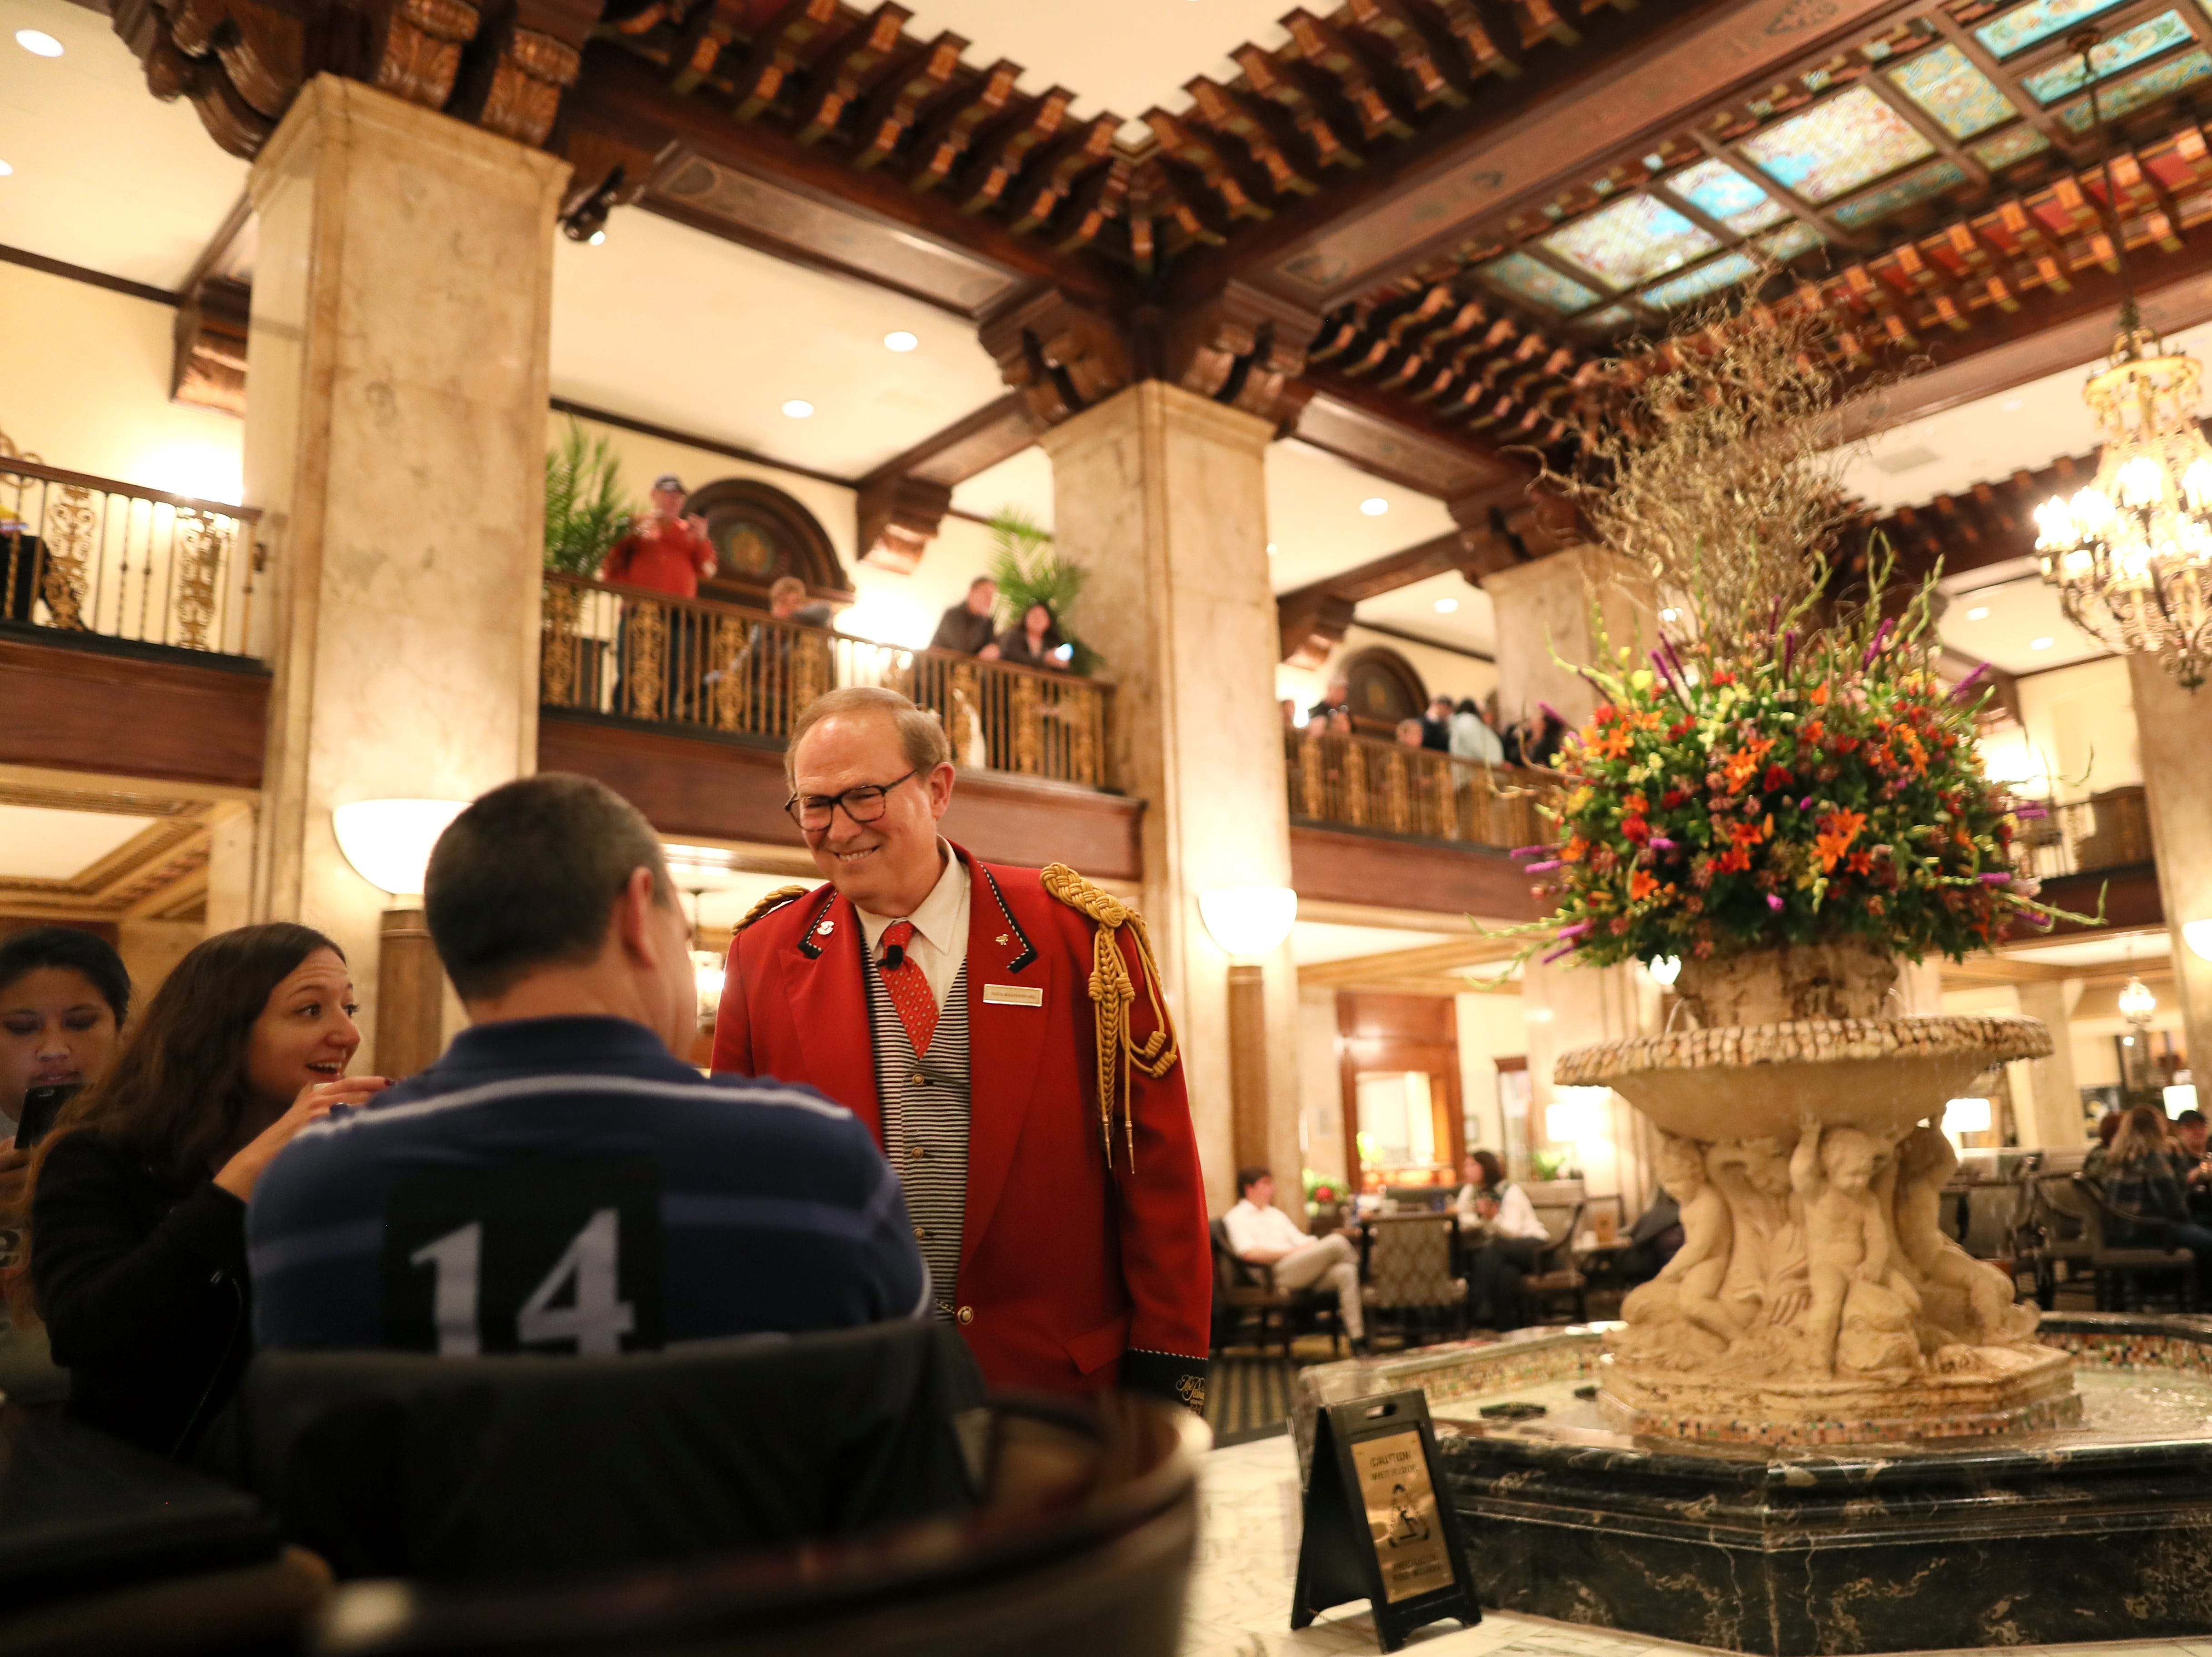 Doug Weatherford, Duckmaster at the Peabody Hotel speaks to guests gathered for the marching of the ducks as the iconic downtown Memphis hotel on Thursday, Feb. 21, 2019.